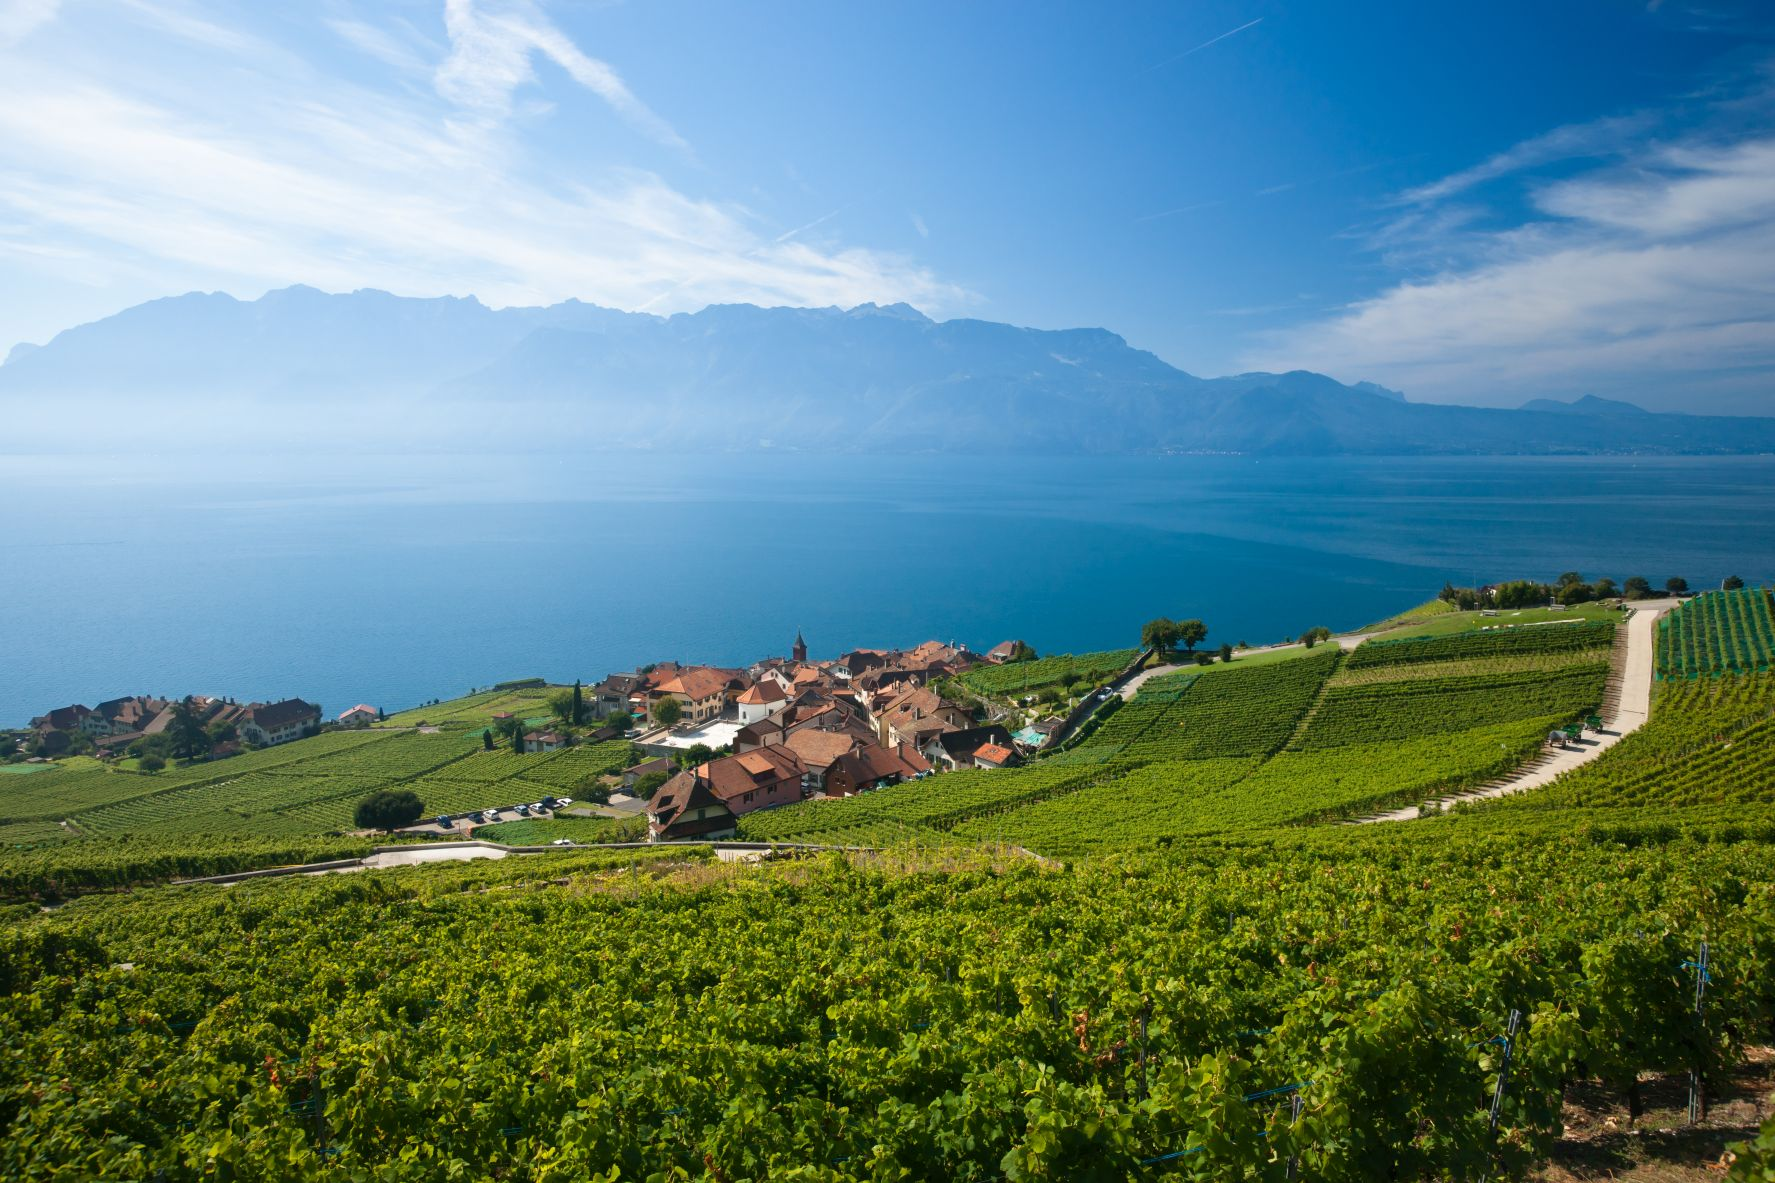 Nestled on the banks of Lake Geneva, in the French-speaking region of Vaud, the medieval city of Lausanne is famed for its 12th-century Gothic cathedral, its 19th century Palais de Rumine, and its cutting-edge gastronomy. An all-year playground, this ancient city has a little something for everyone.